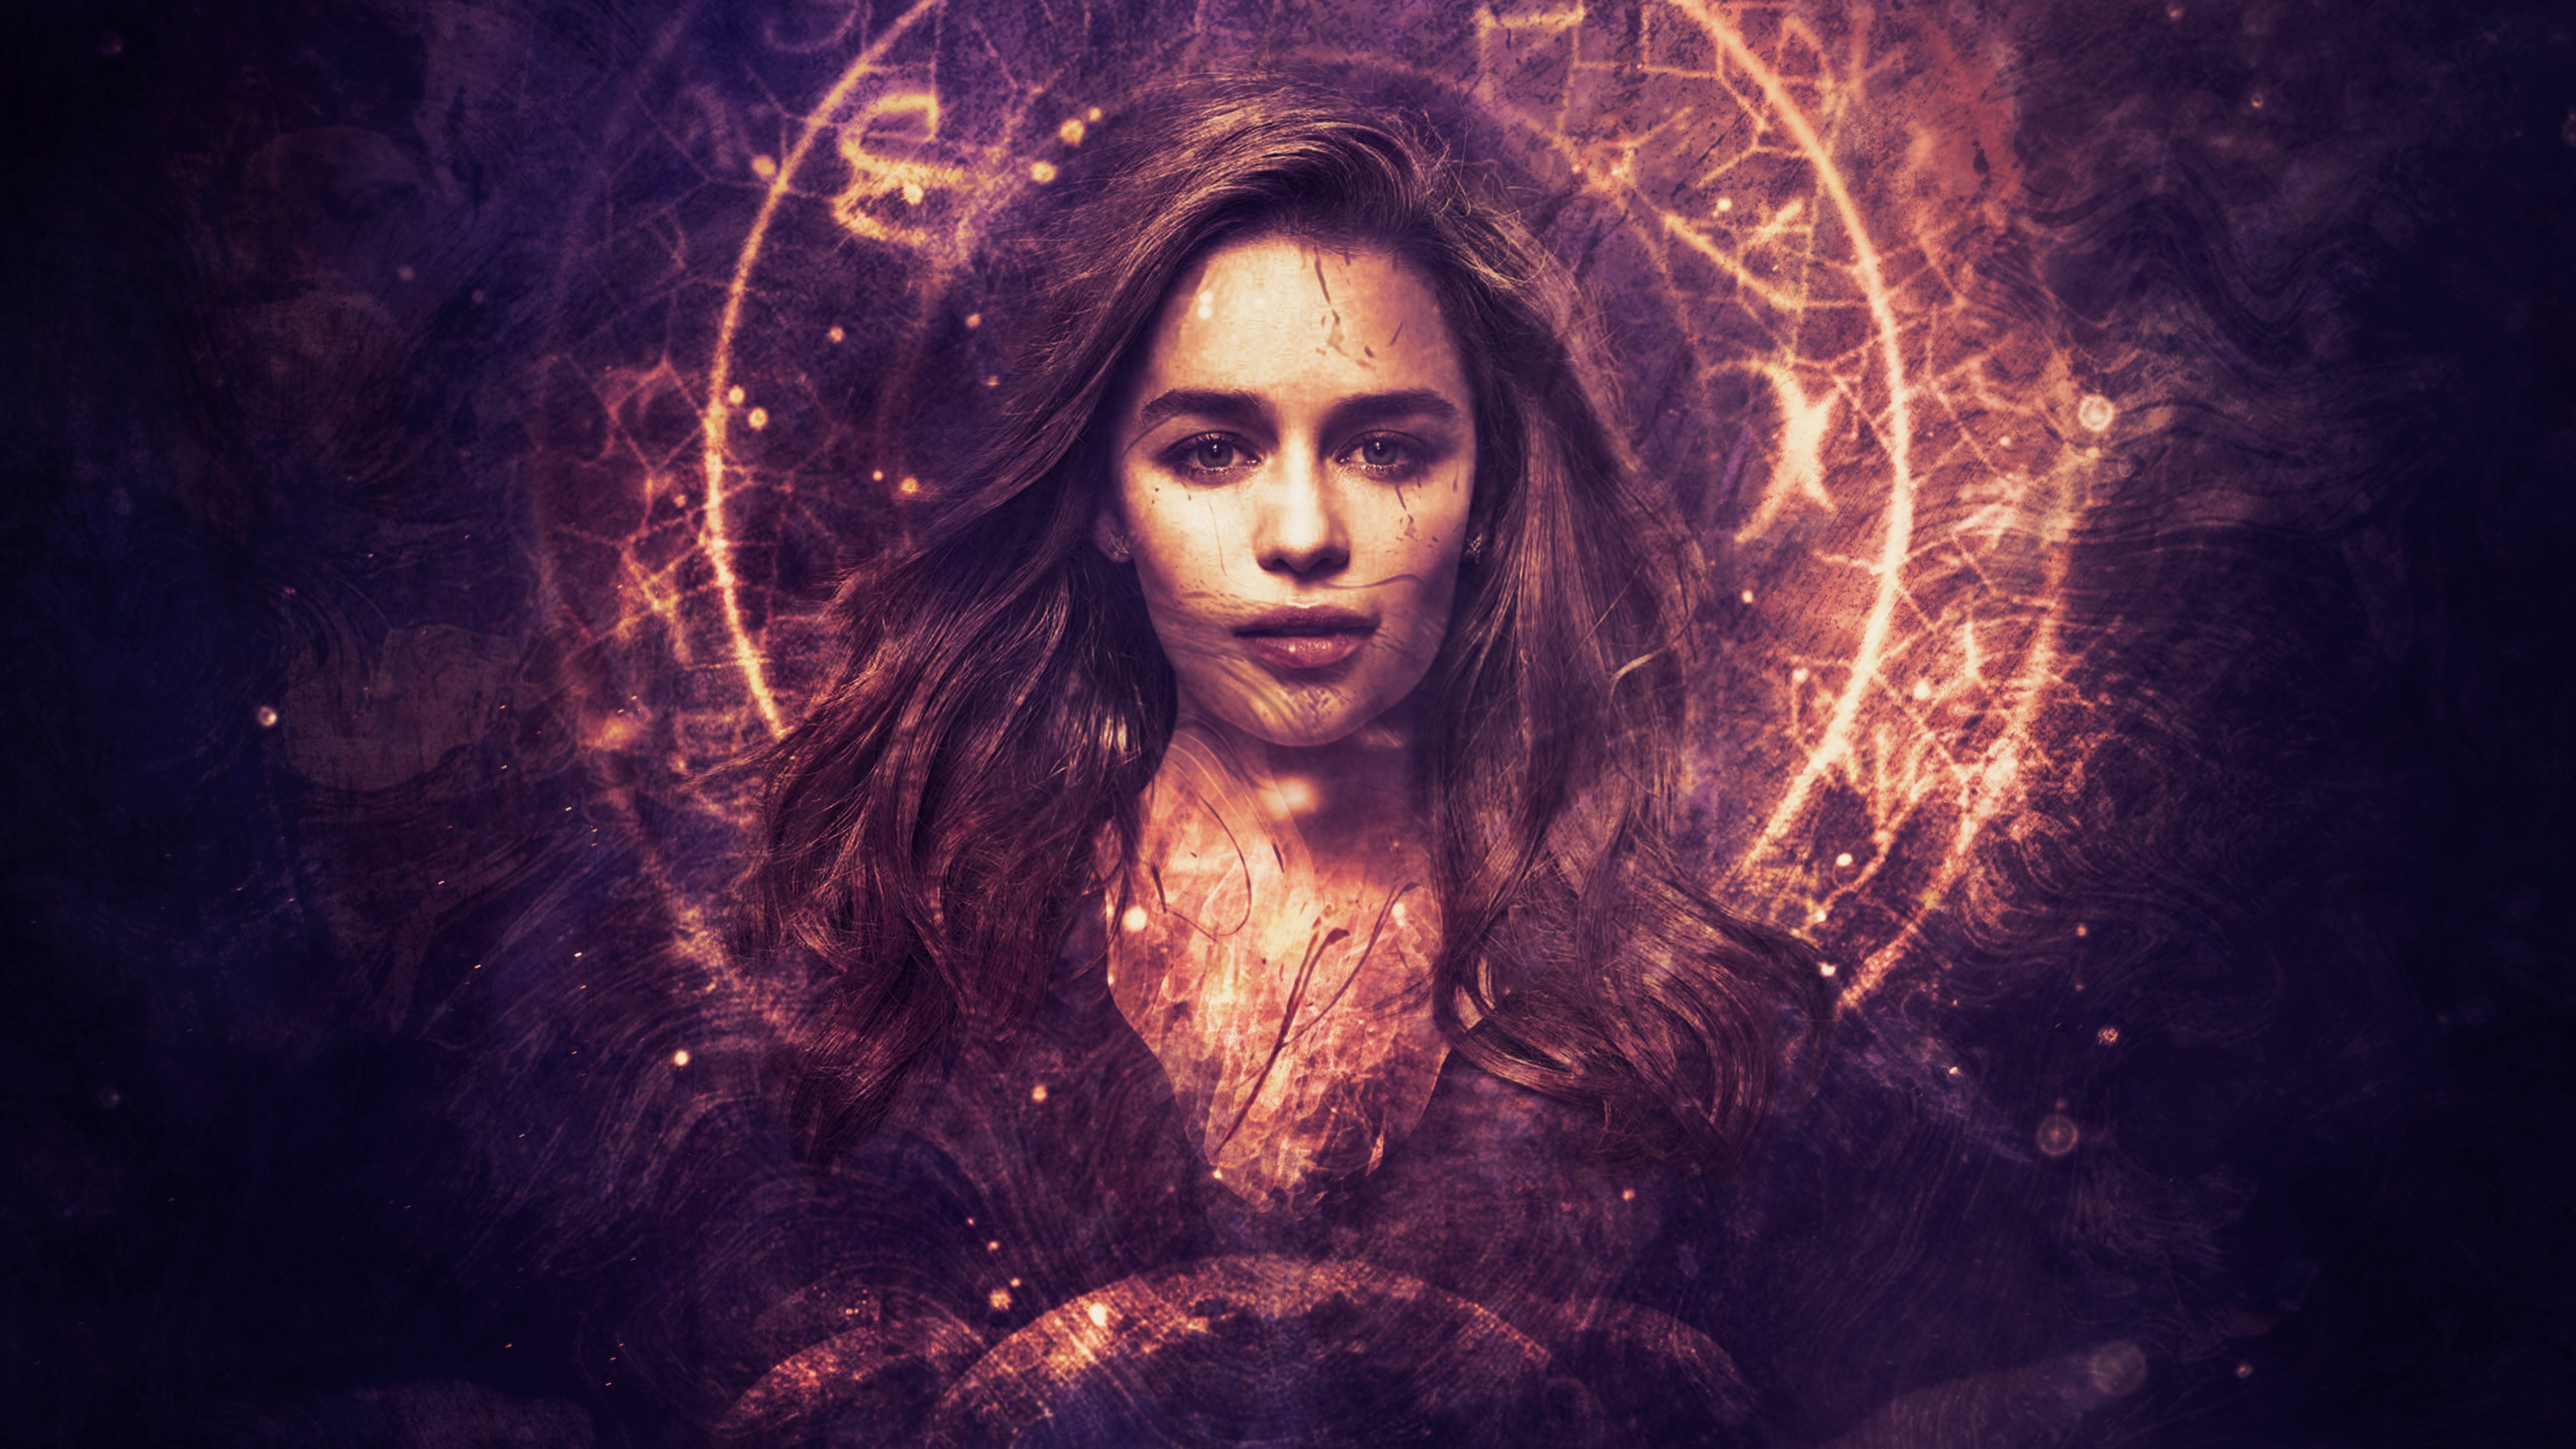 Emilia Clarke Photo Manipulation 4K Wallpaper